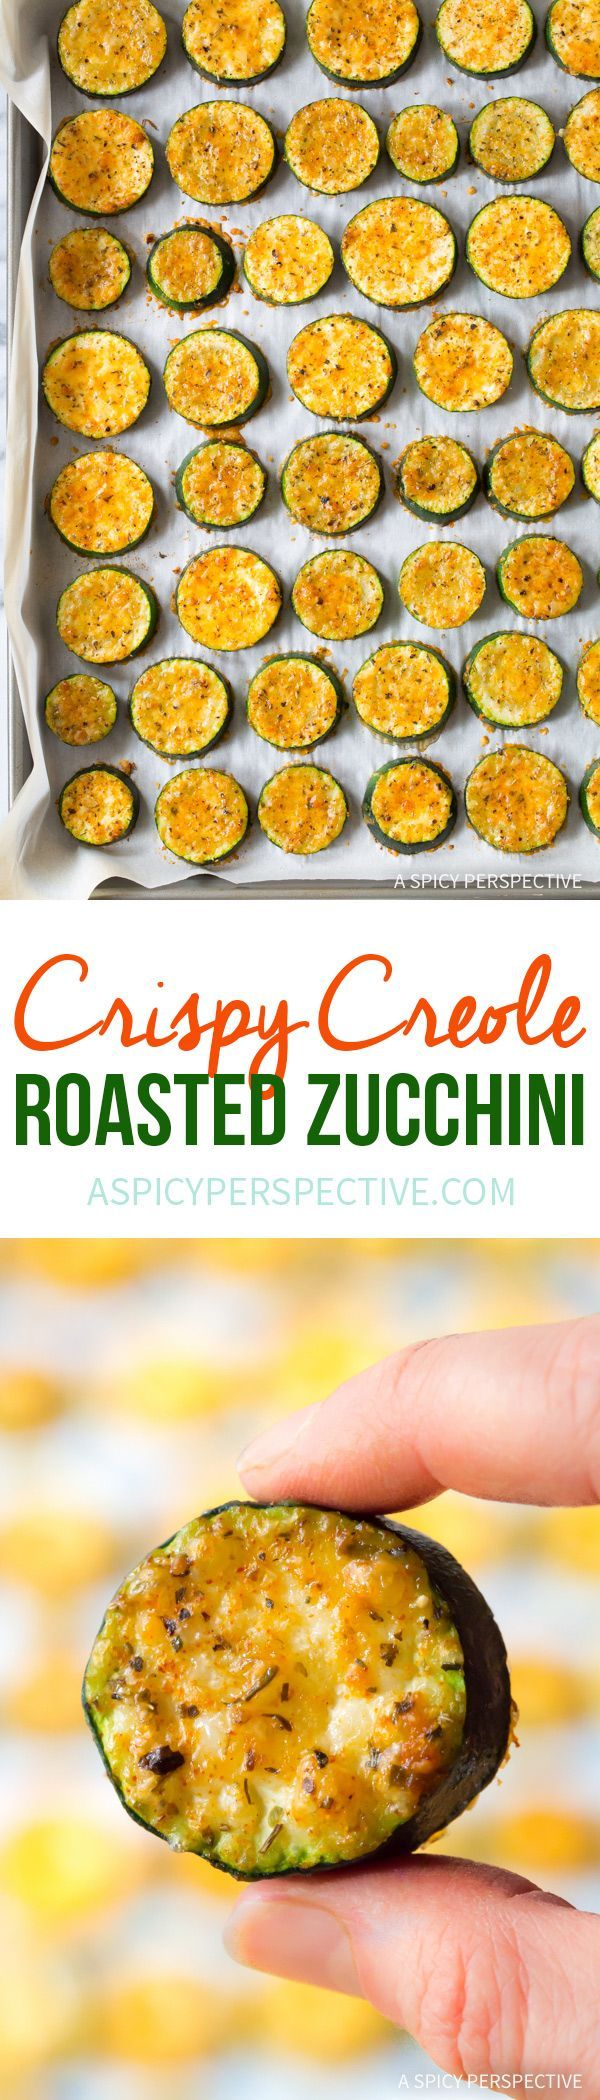 Crispy Creole Roasted Zucchini Recipe  #lowcarb  via @spicyperspectiv